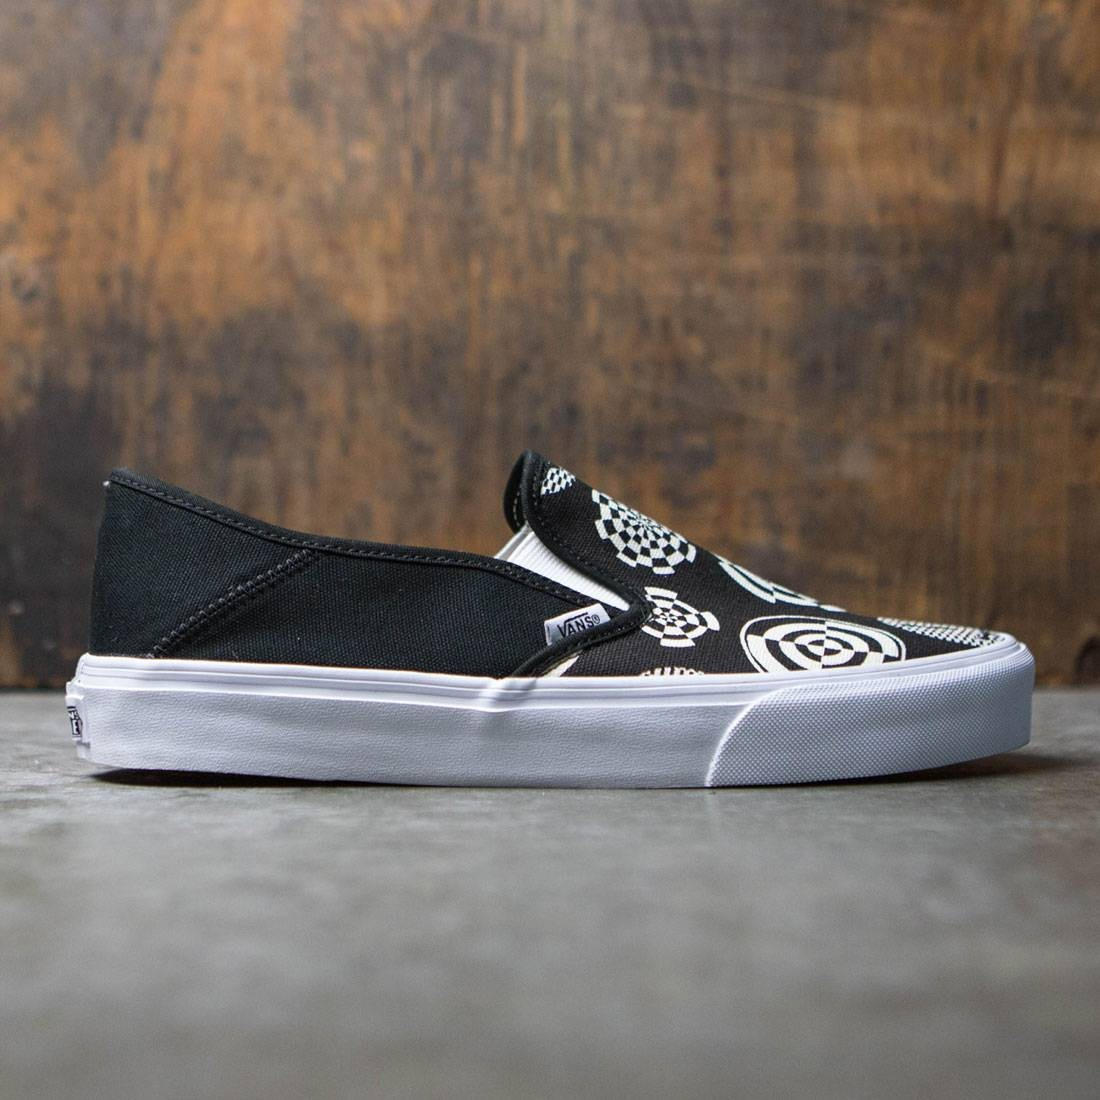 Vans Men Slip-On SF - Wade Goodall black white